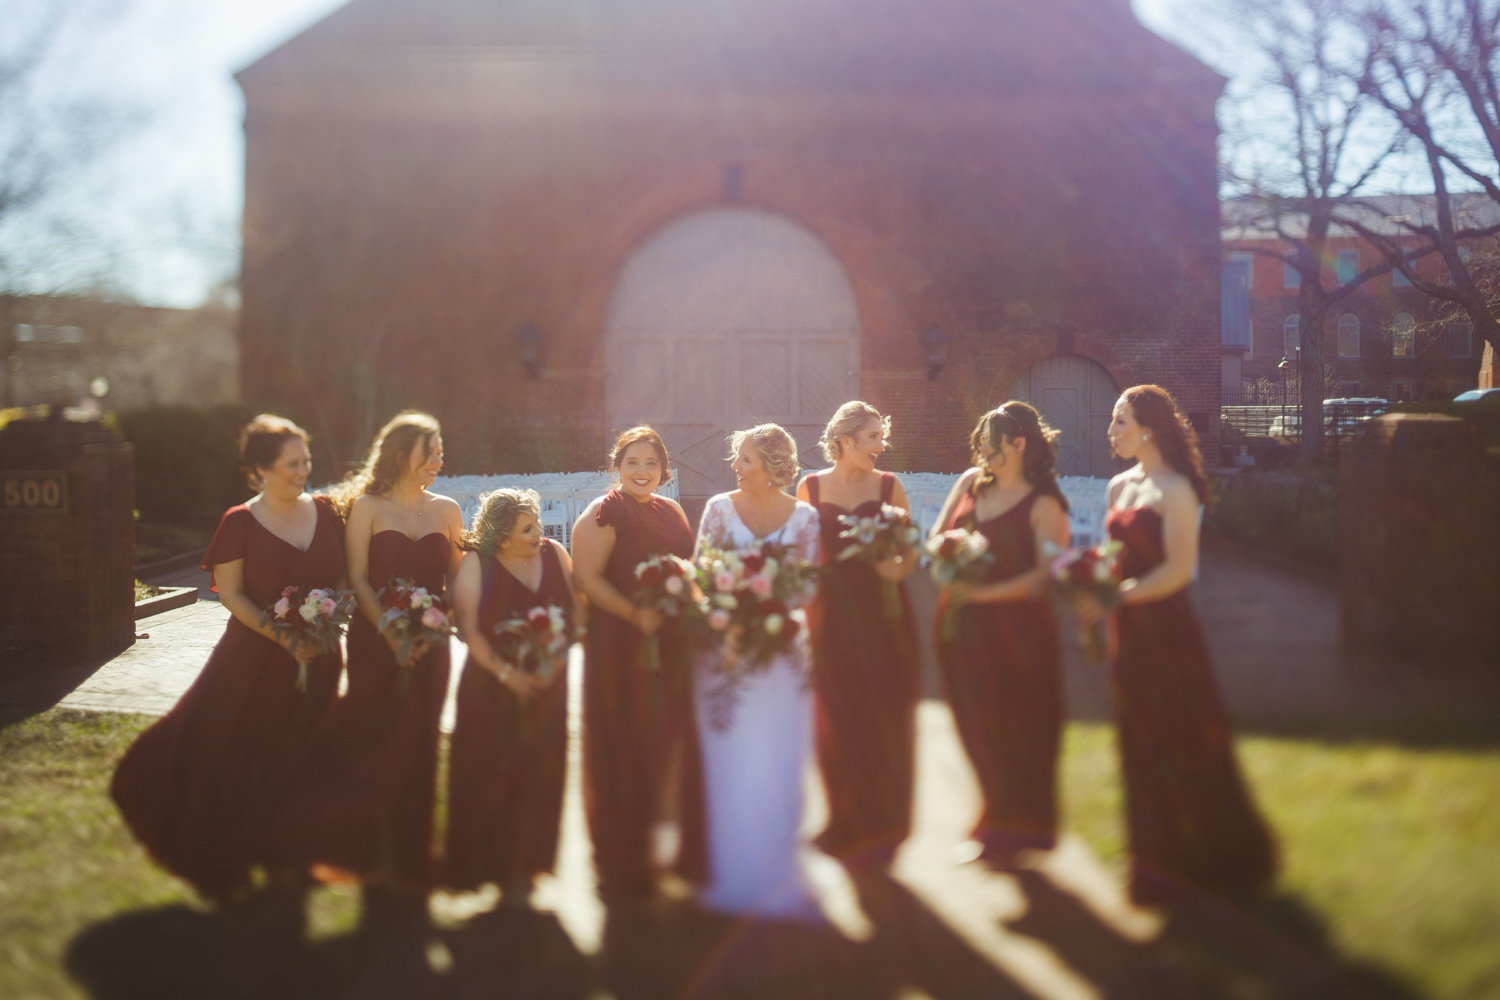 020 - bridesmaids tilt shift photography.jpg